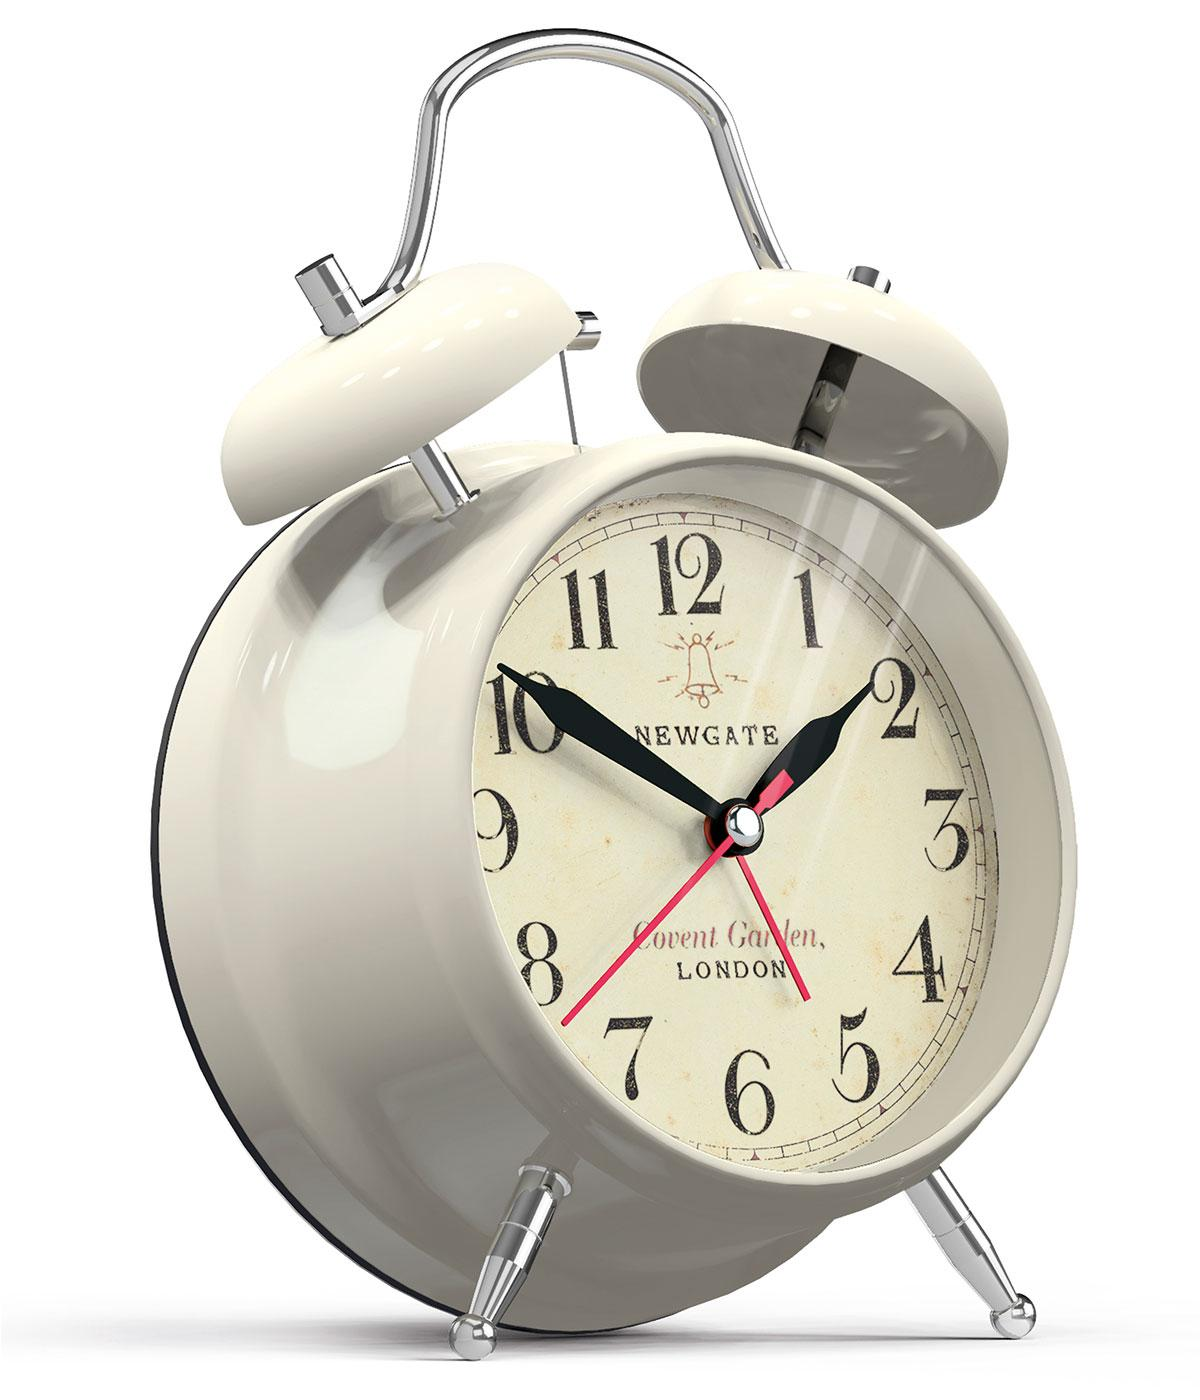 Covent Garden NEWGATE Retro Bell Alarm Clock